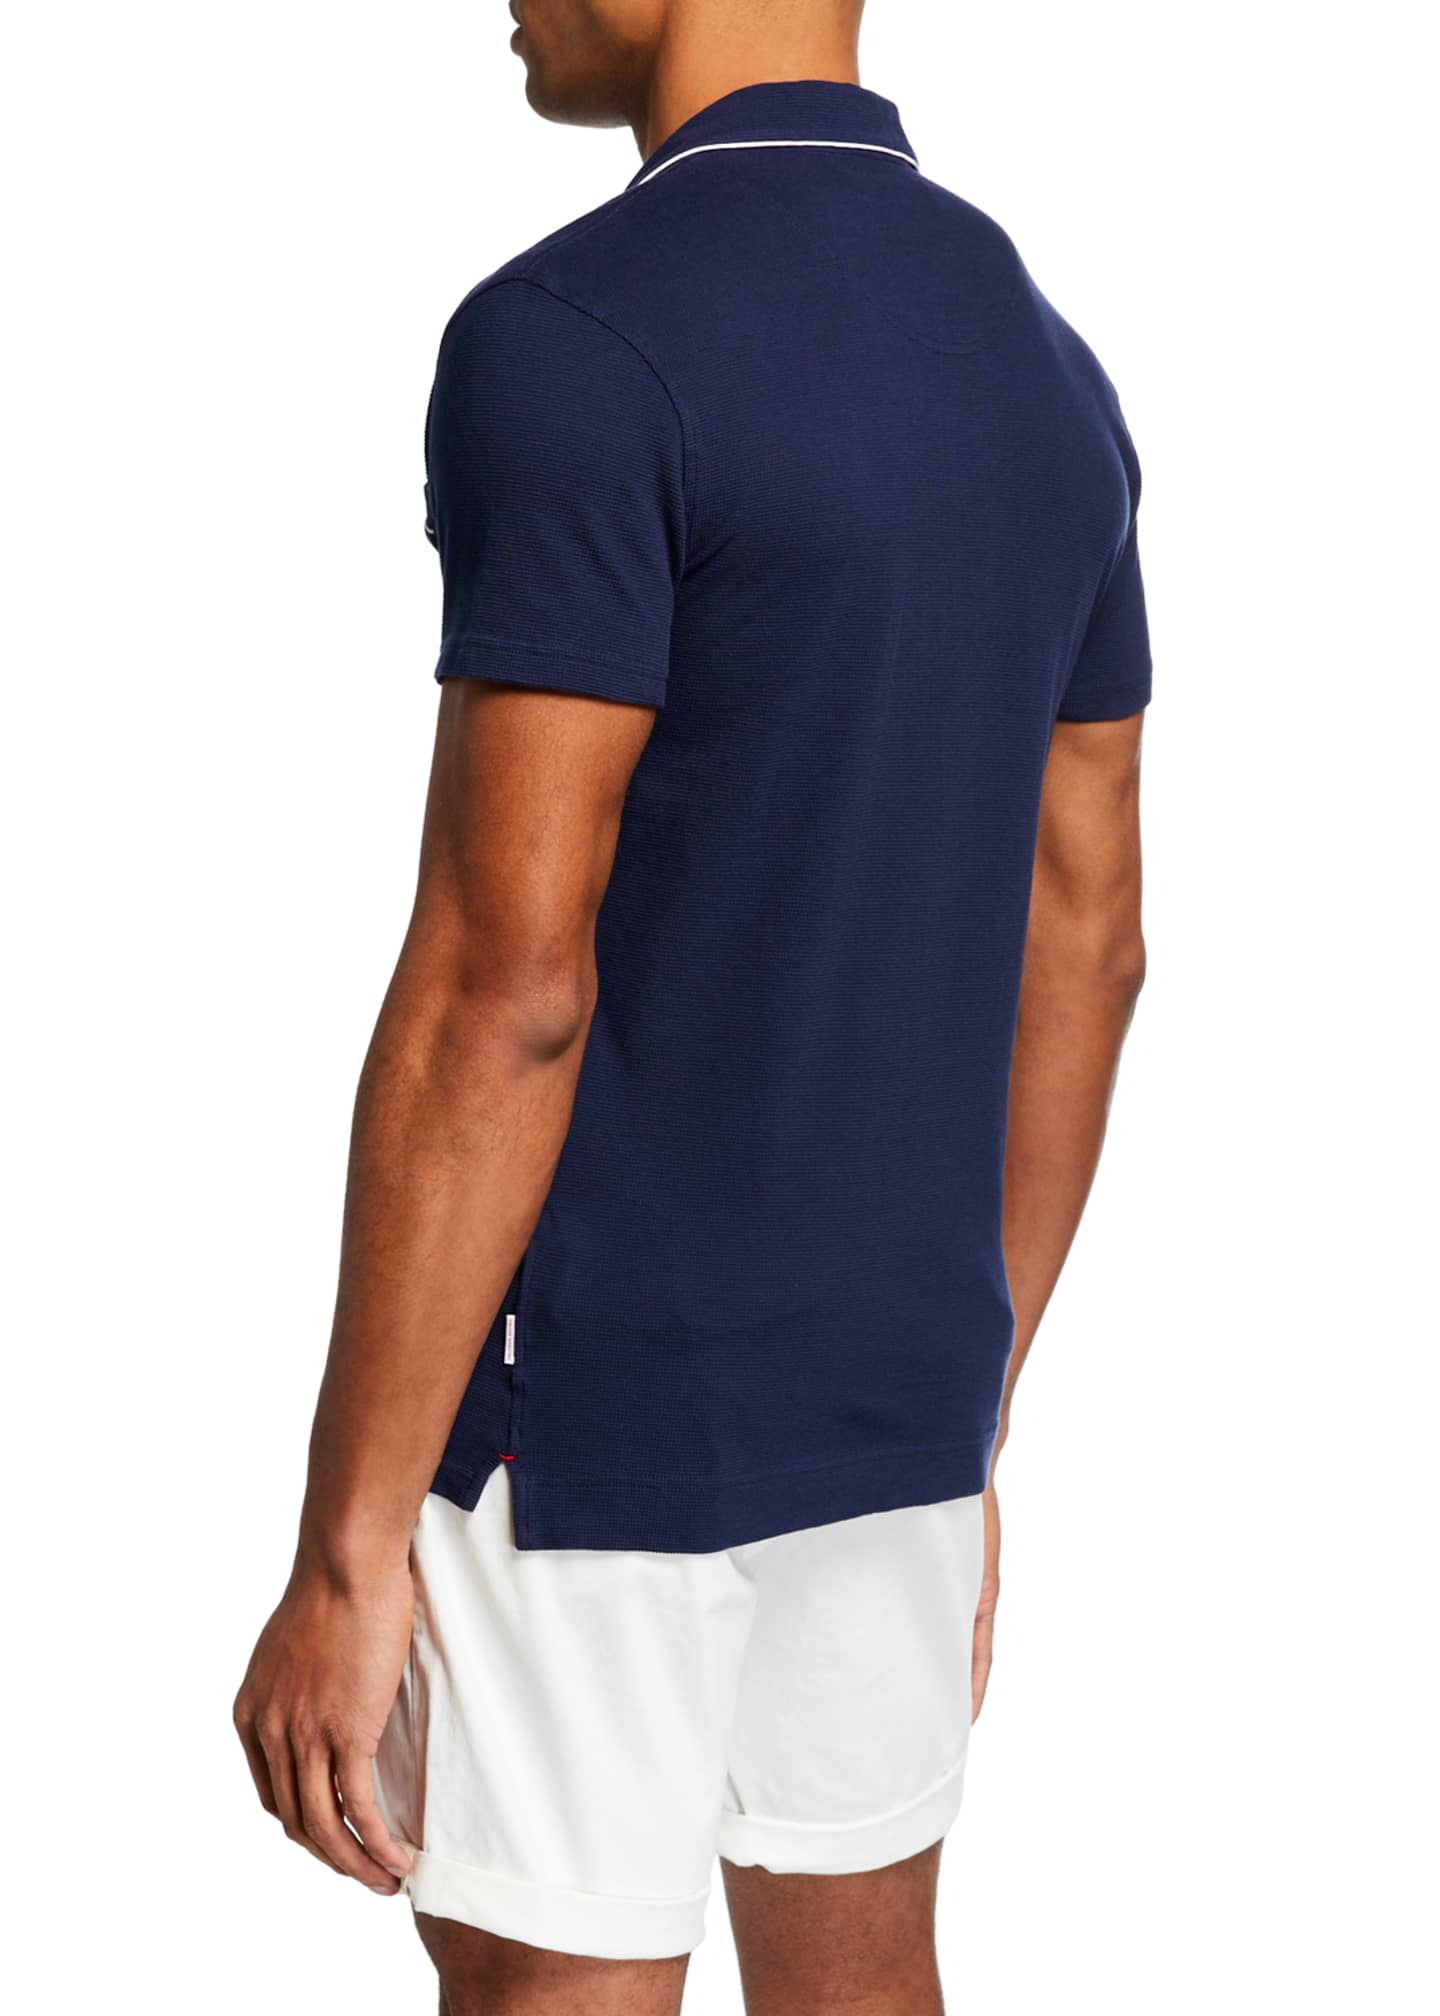 Image 2 of 3: Men's Donald Polo Shirt w/ Contrast Piping